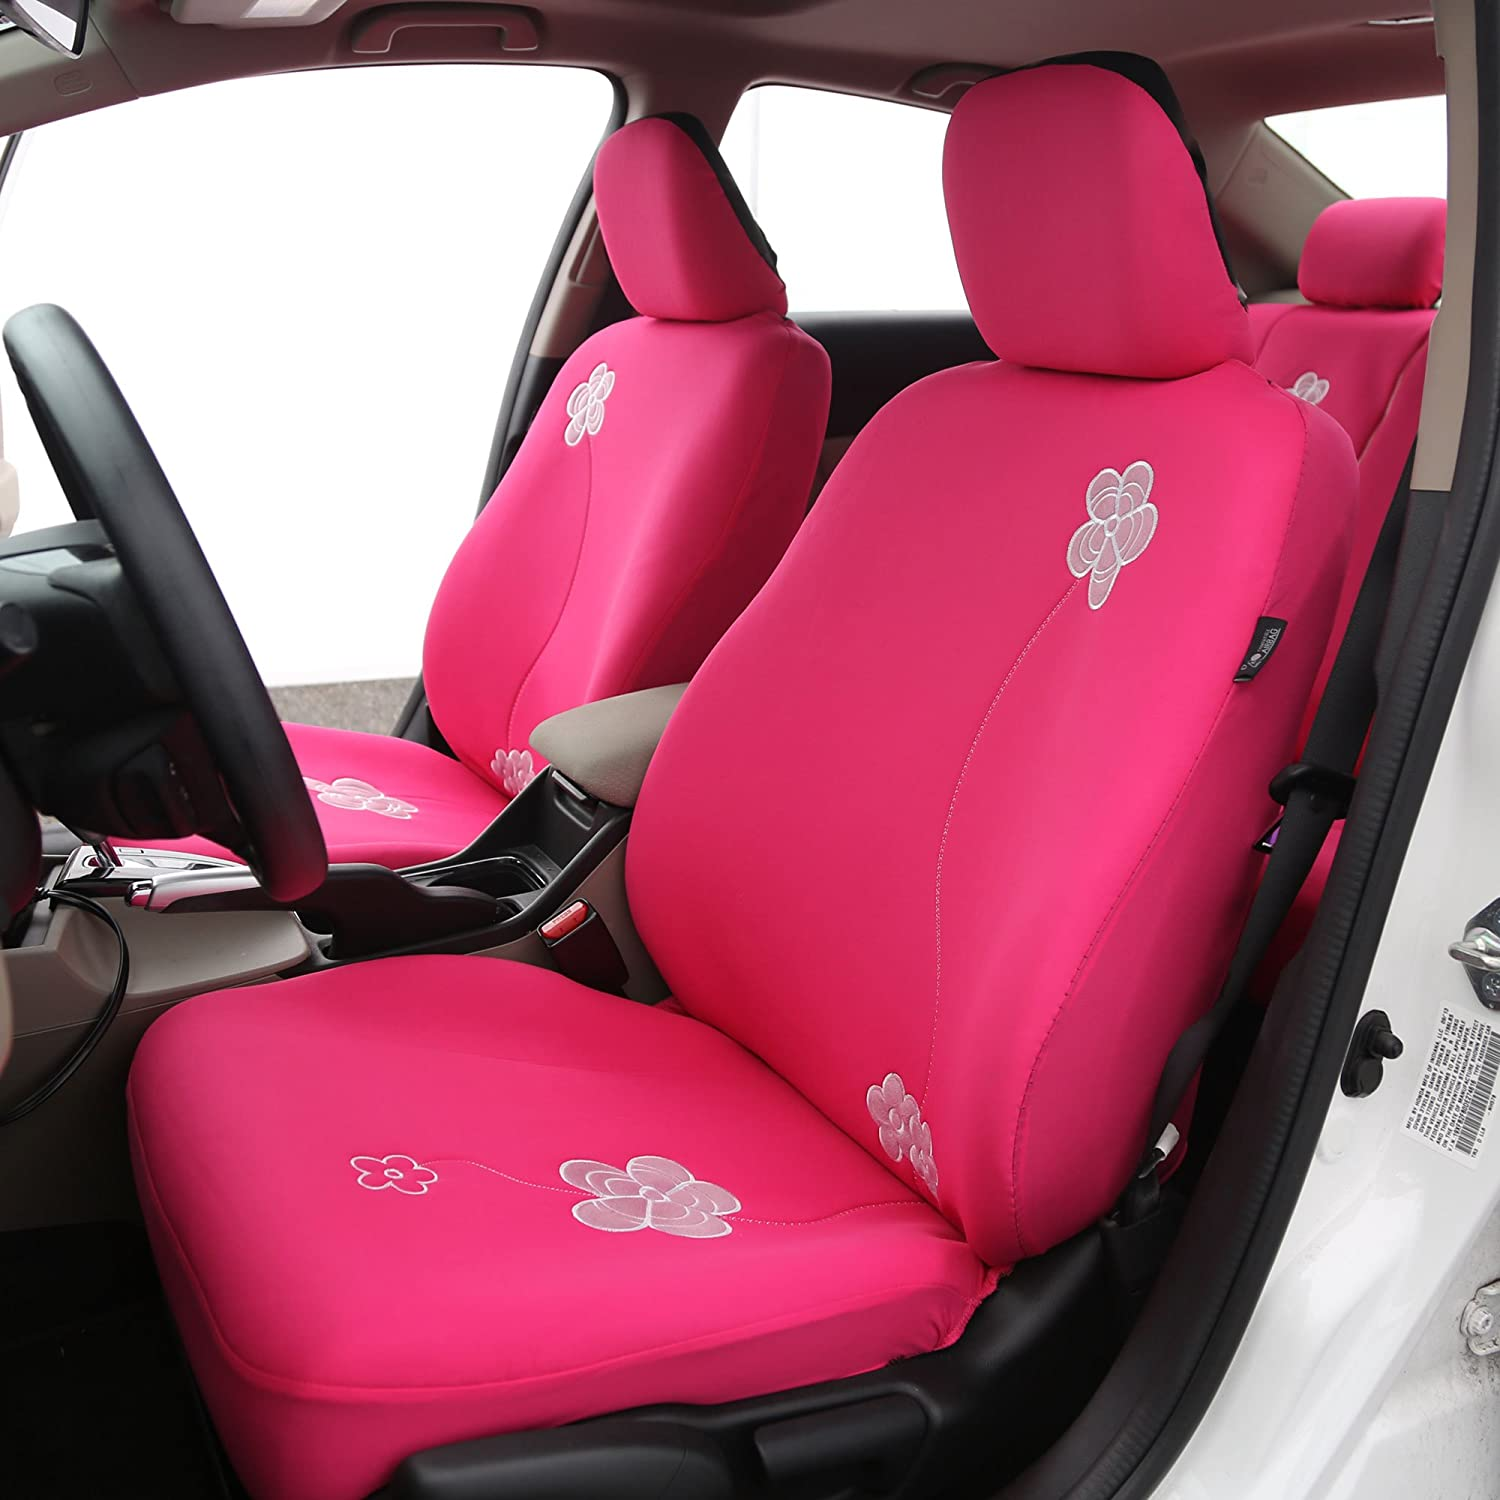 Pink FH Group Universal Fit Full Set Floral Embroidery Design Car Seat Cover, FH-FB053115, Airbag Compatible and Split Bench, Fit Most Car, Truck, SUV, or Van